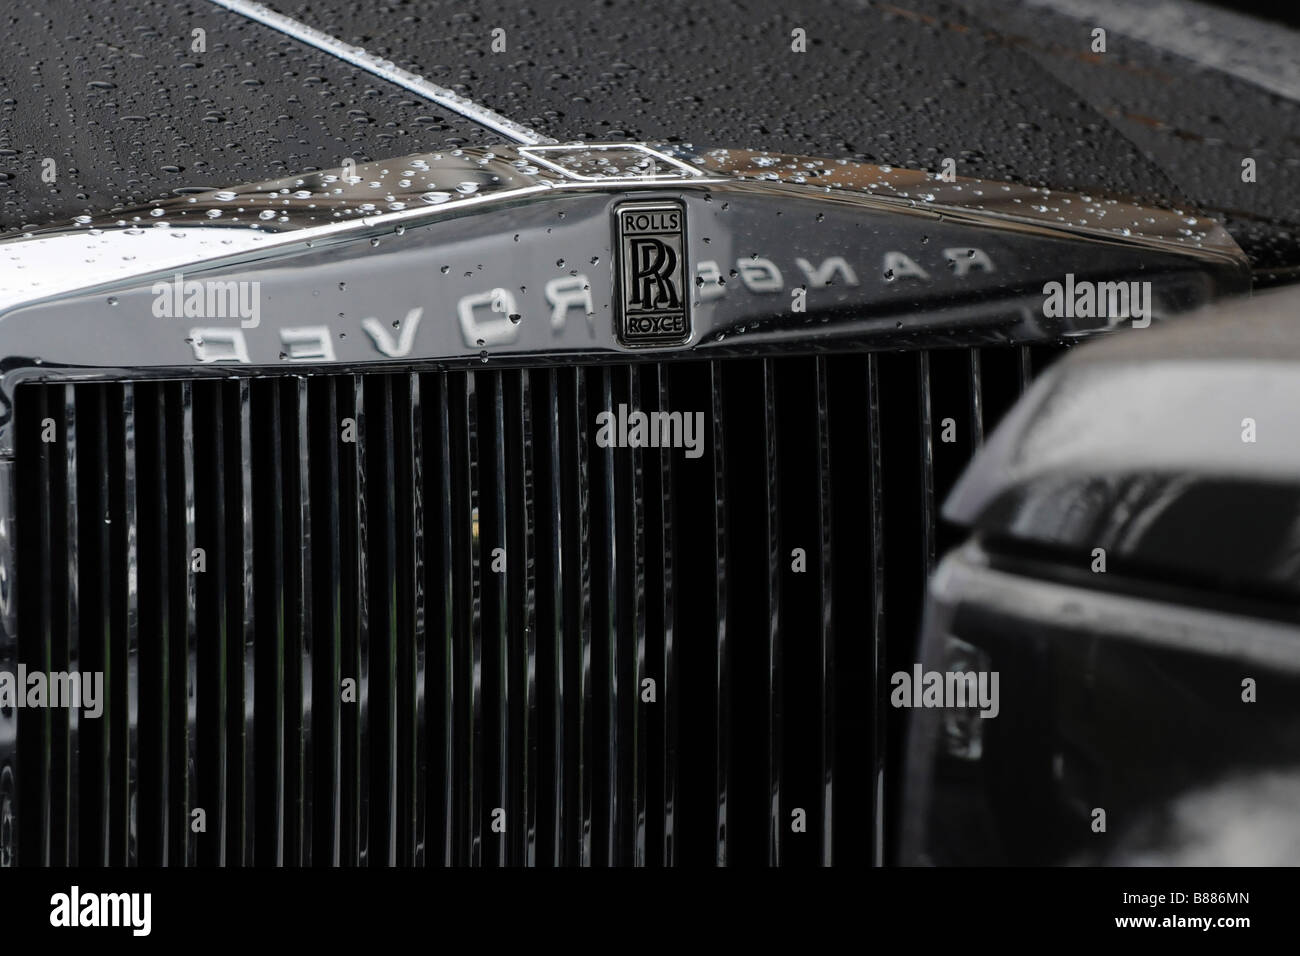 Rolls Royce Phantom with Range Rover reflection on grill - Stock Image